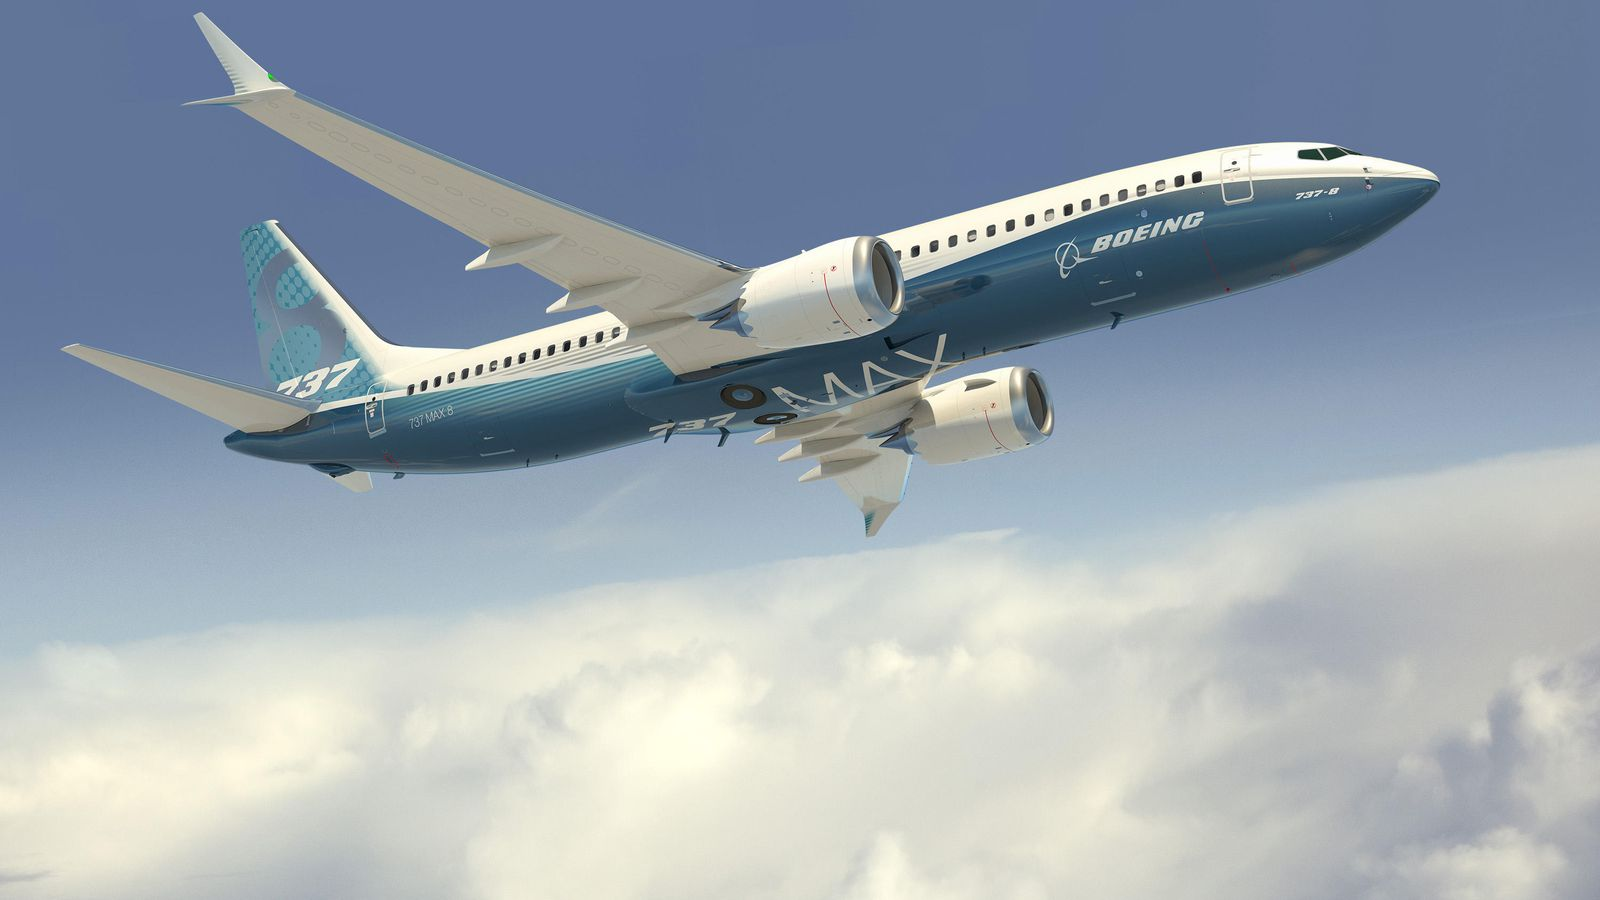 Is Boeing Stock a Good Buy after Max 737 Incidents?